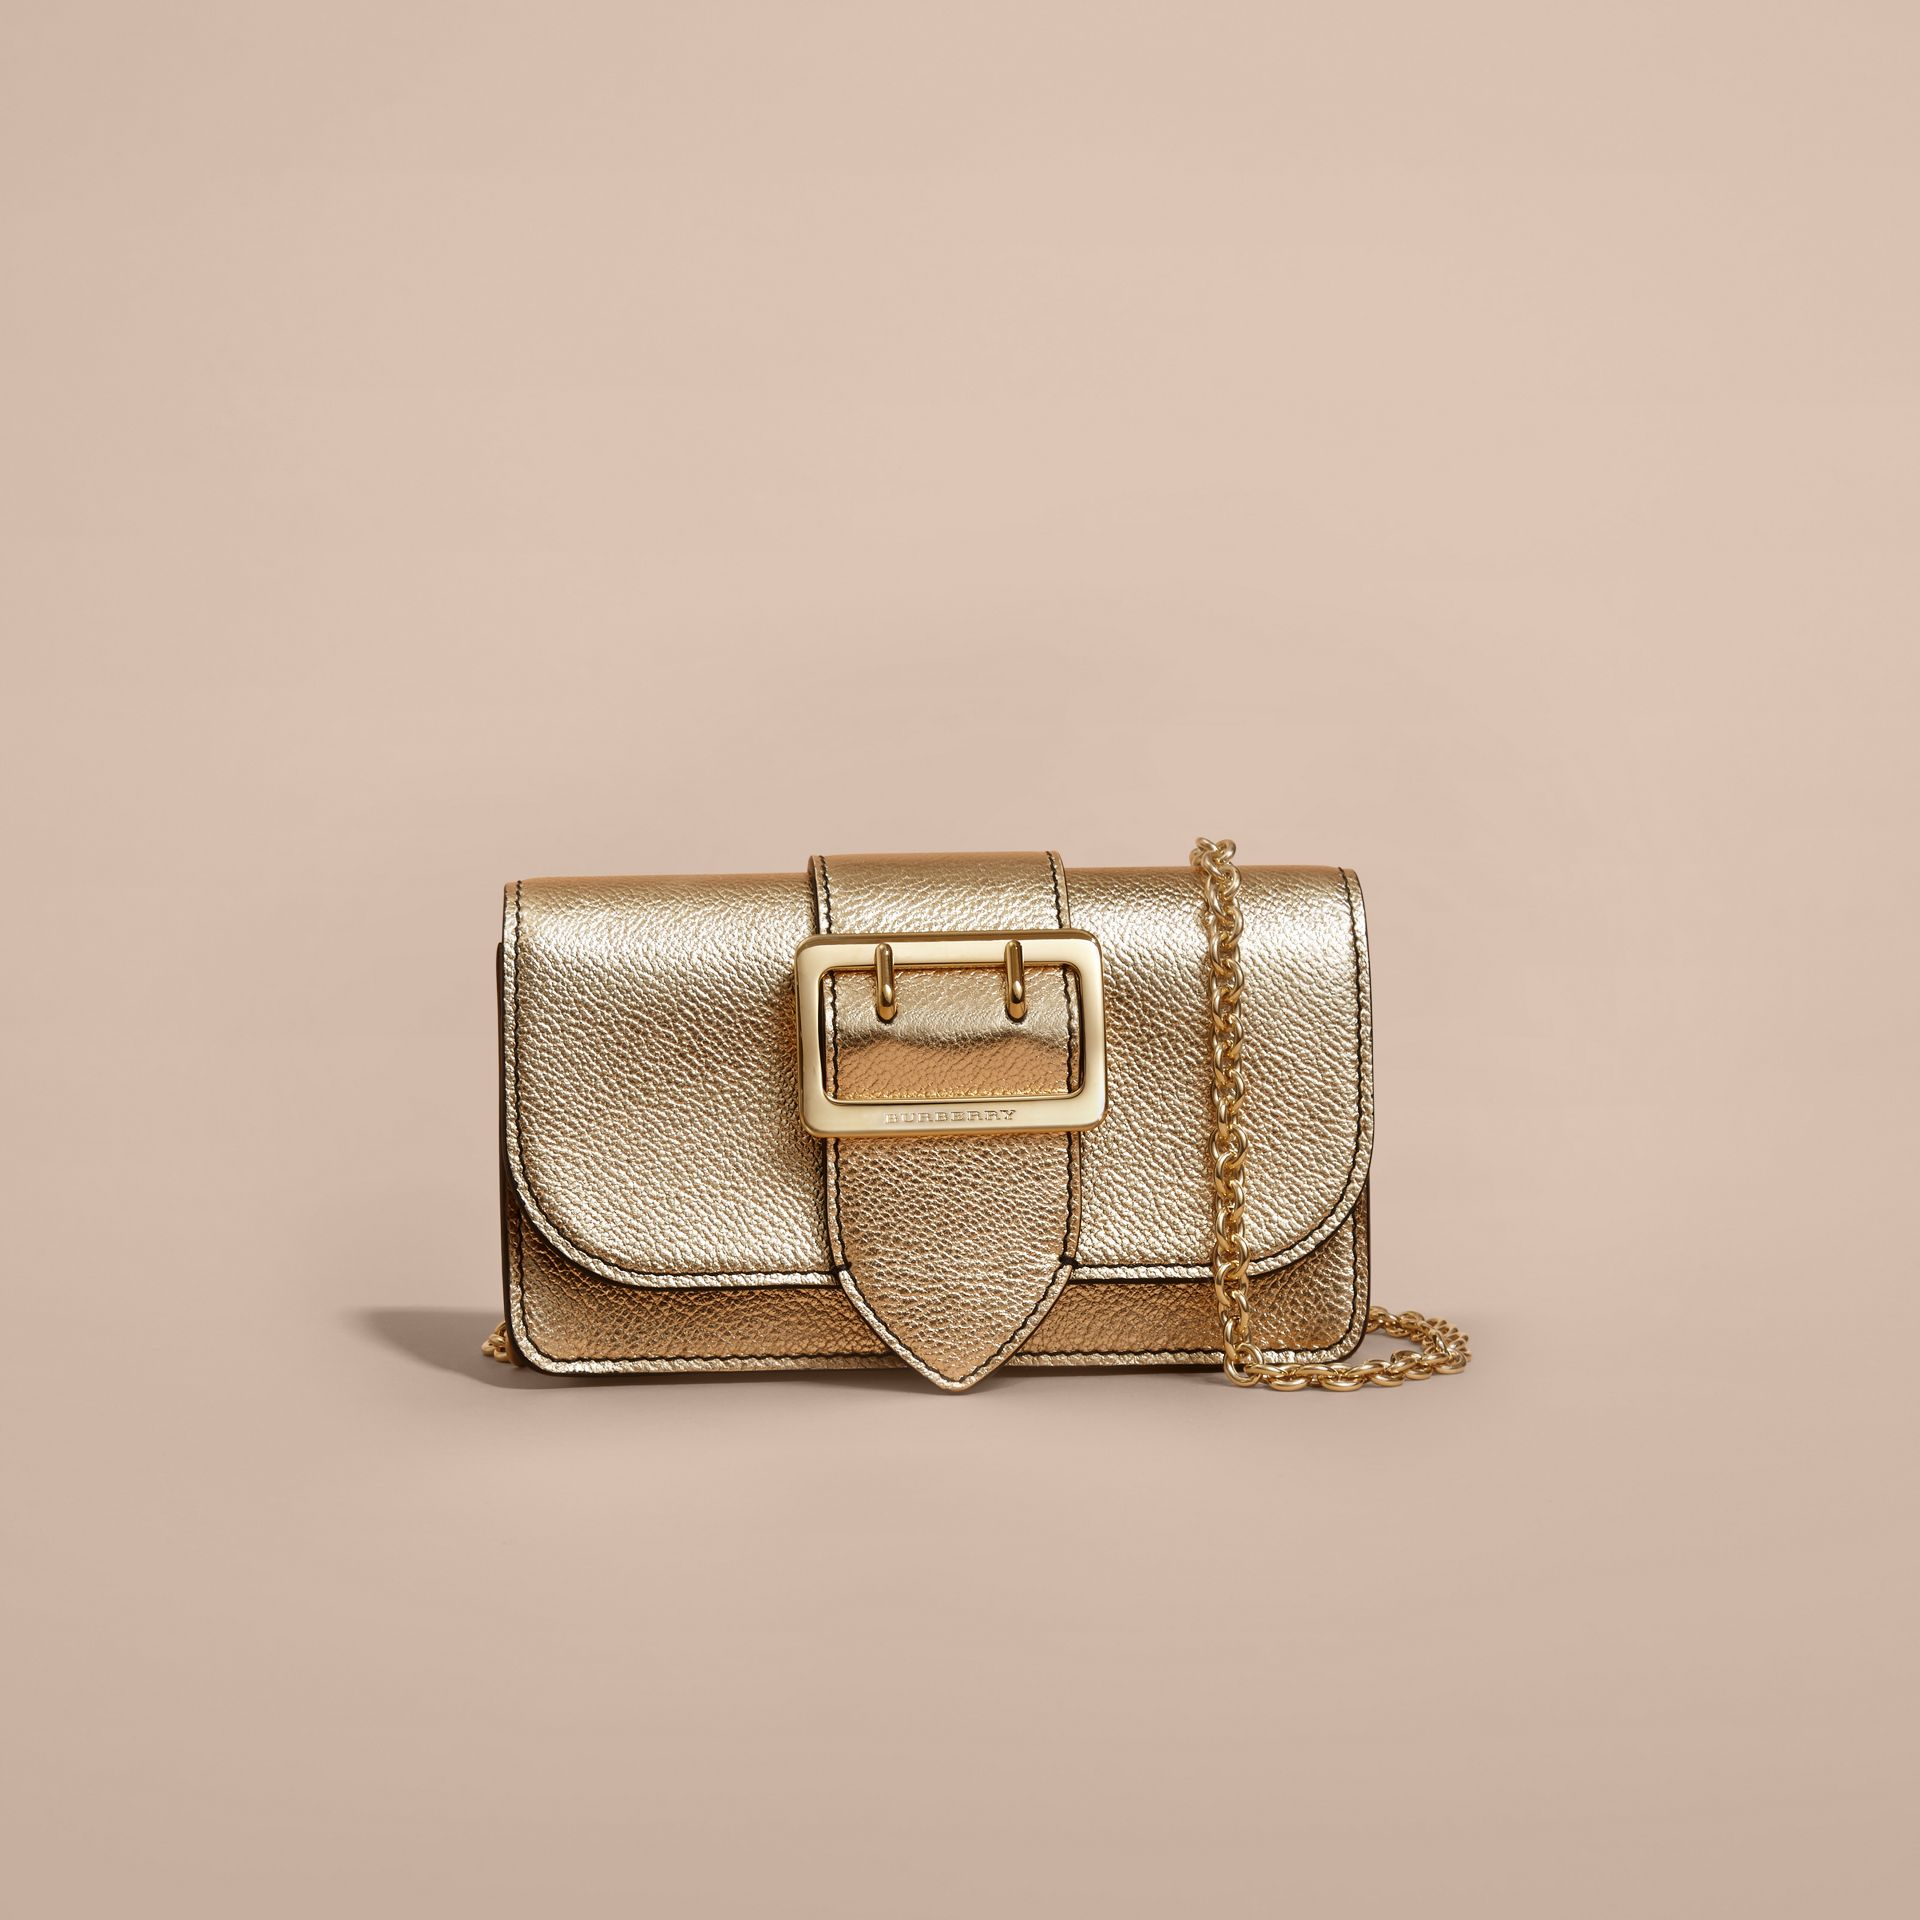 Gold The Mini Buckle Bag in Metallic Grainy Leather Gold - gallery image 9